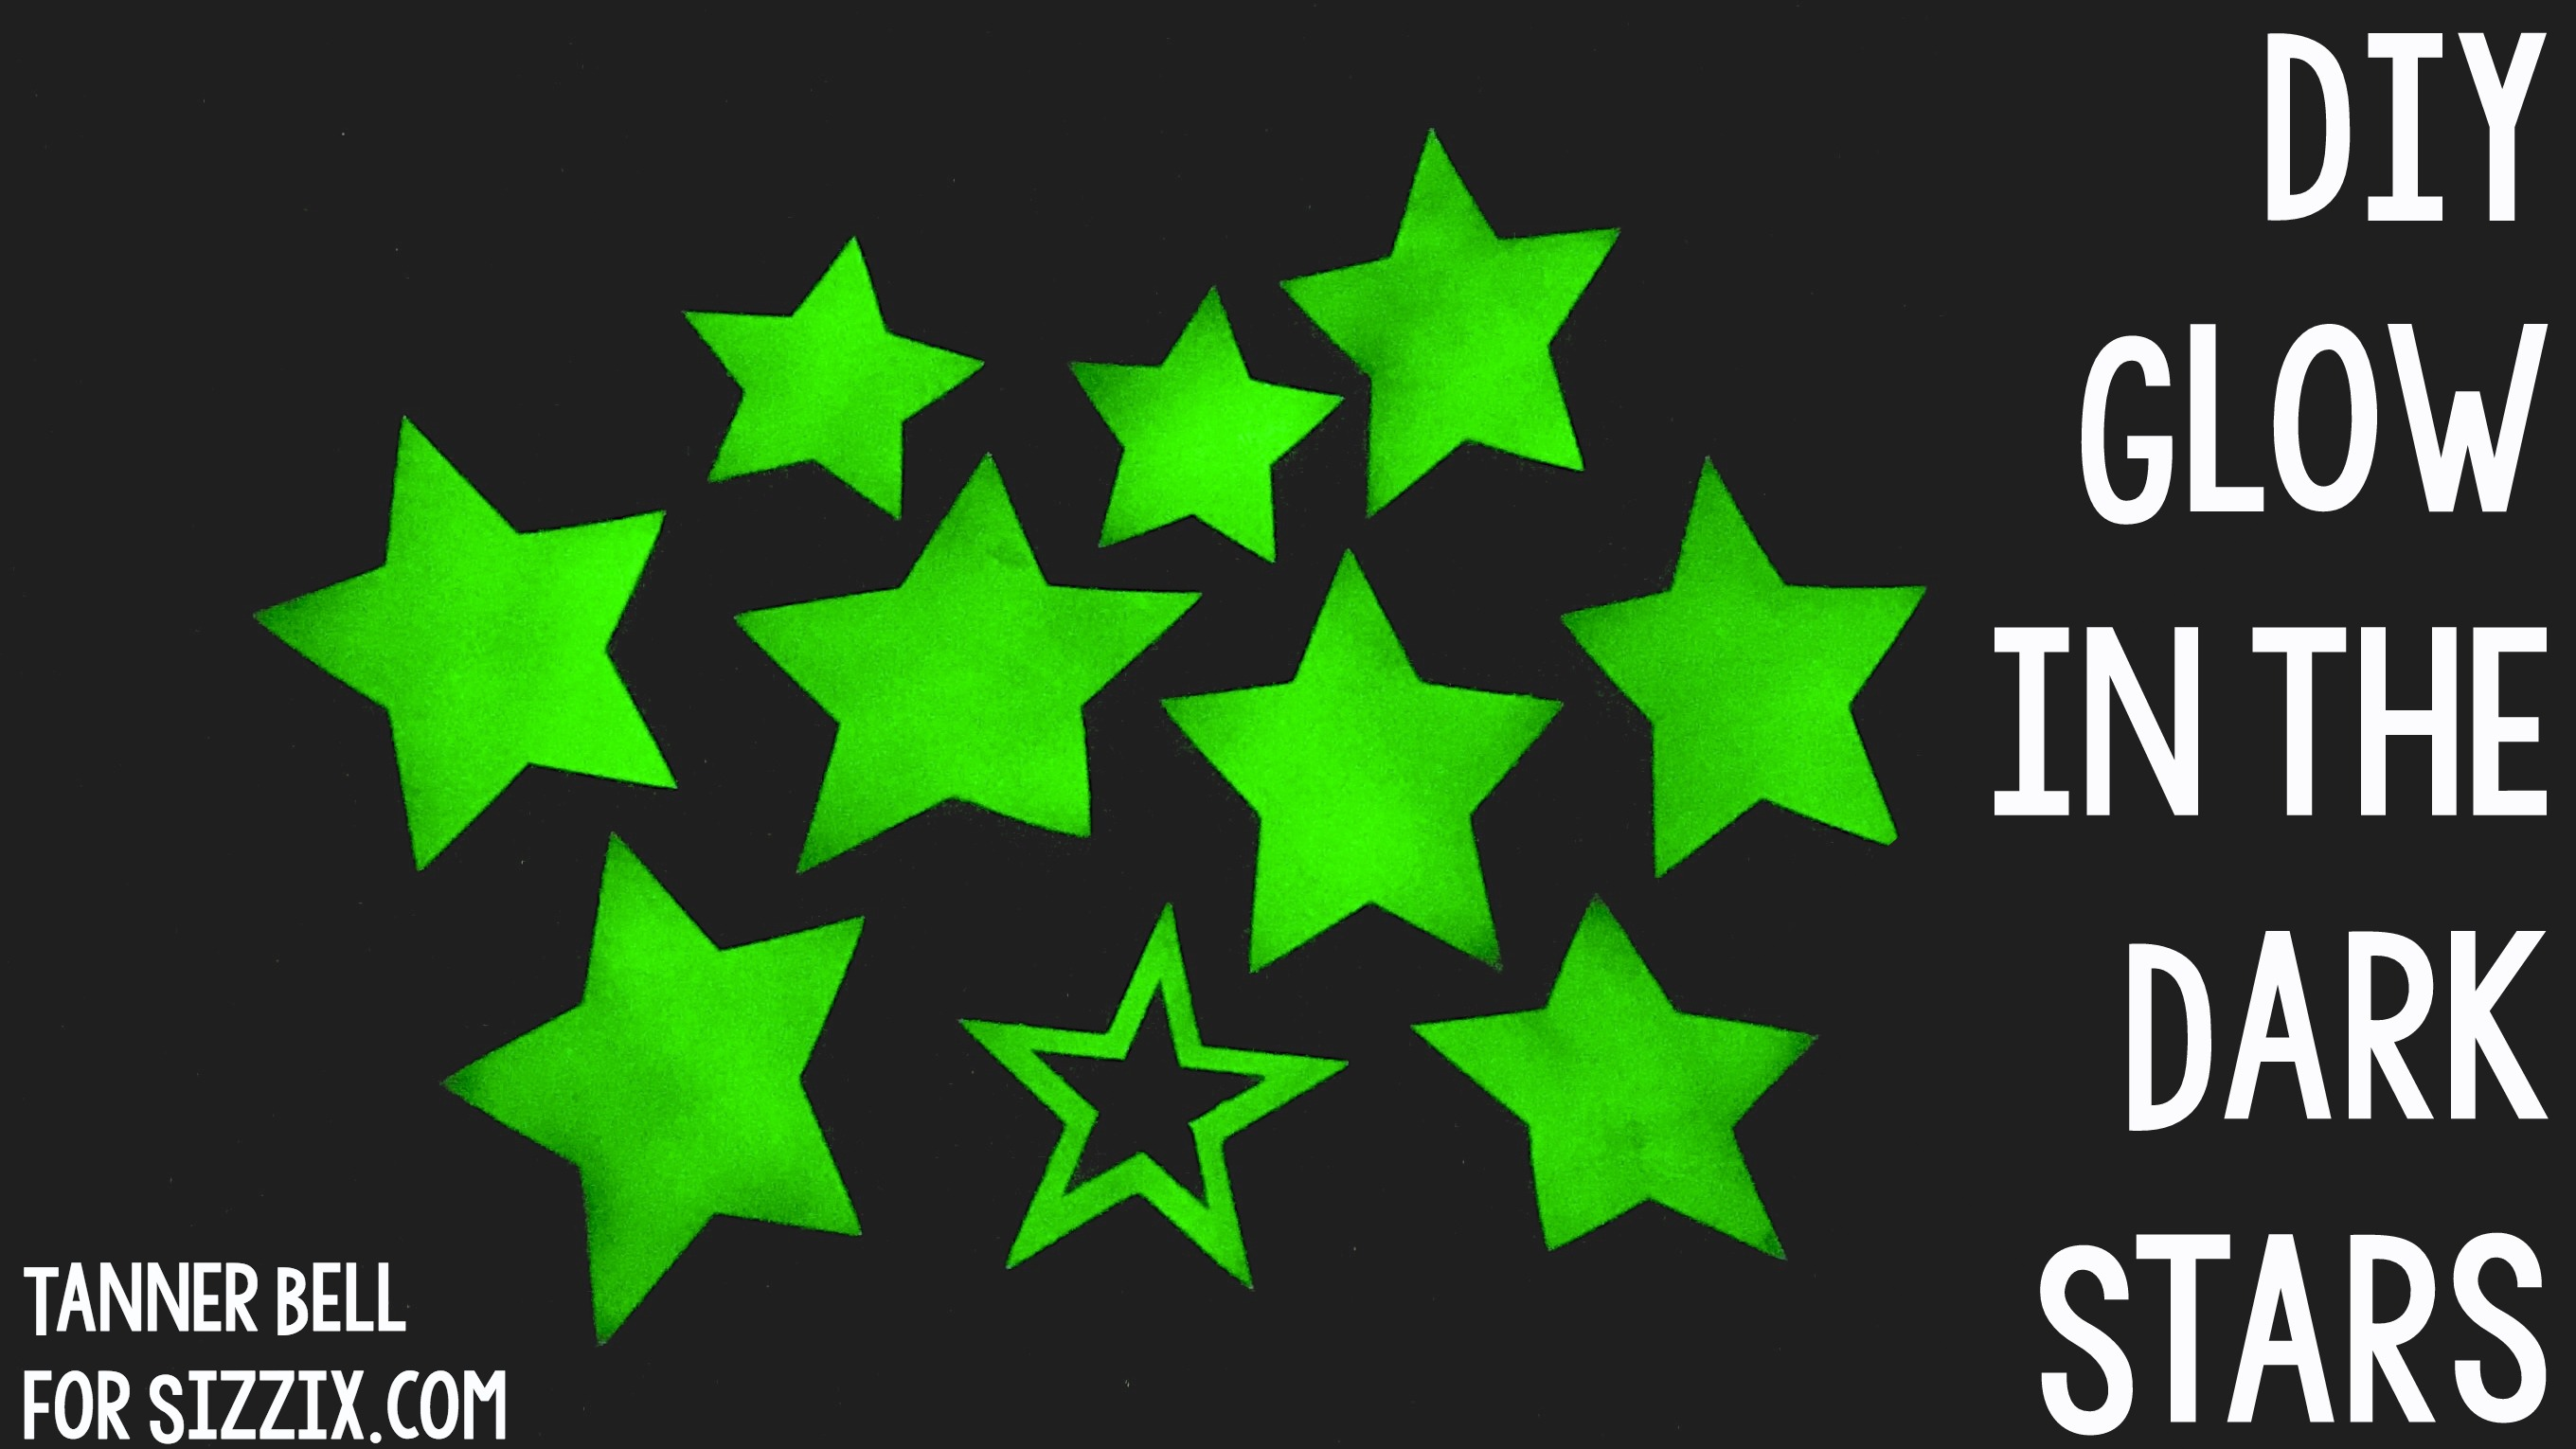 Fun Diy Home Decor Ideas Diy Glow In The Dark Stars A Little Craft In Your Day